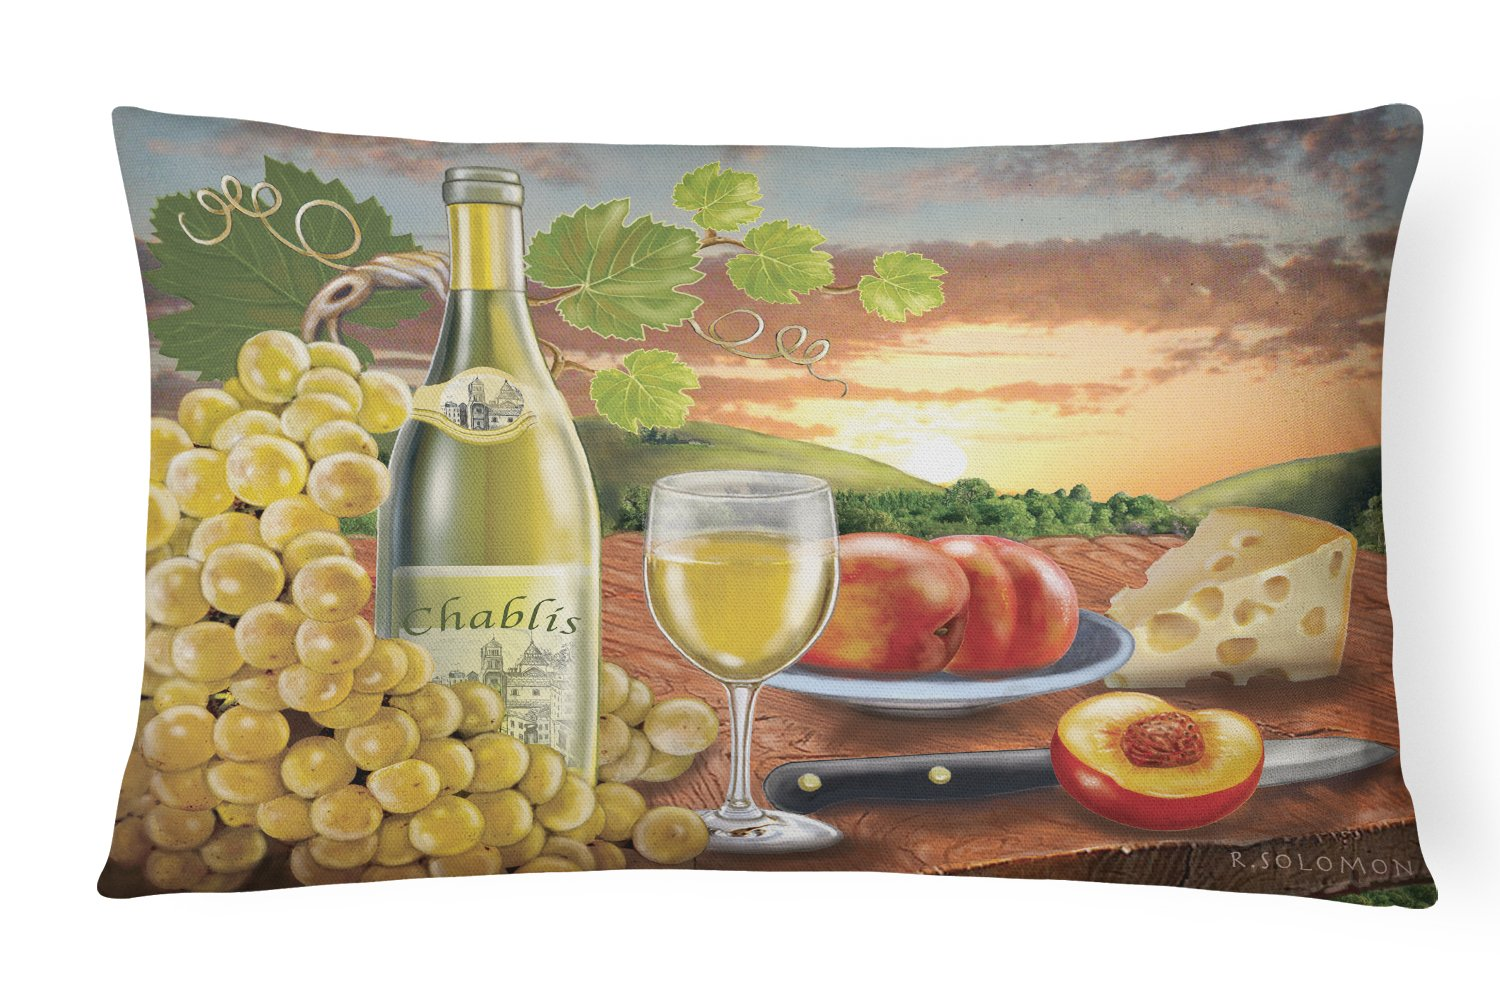 Chablis, Peach, Wine and Cheese Canvas Fabric Decorative Pillow PRS4028PW1216 by Caroline's Treasures